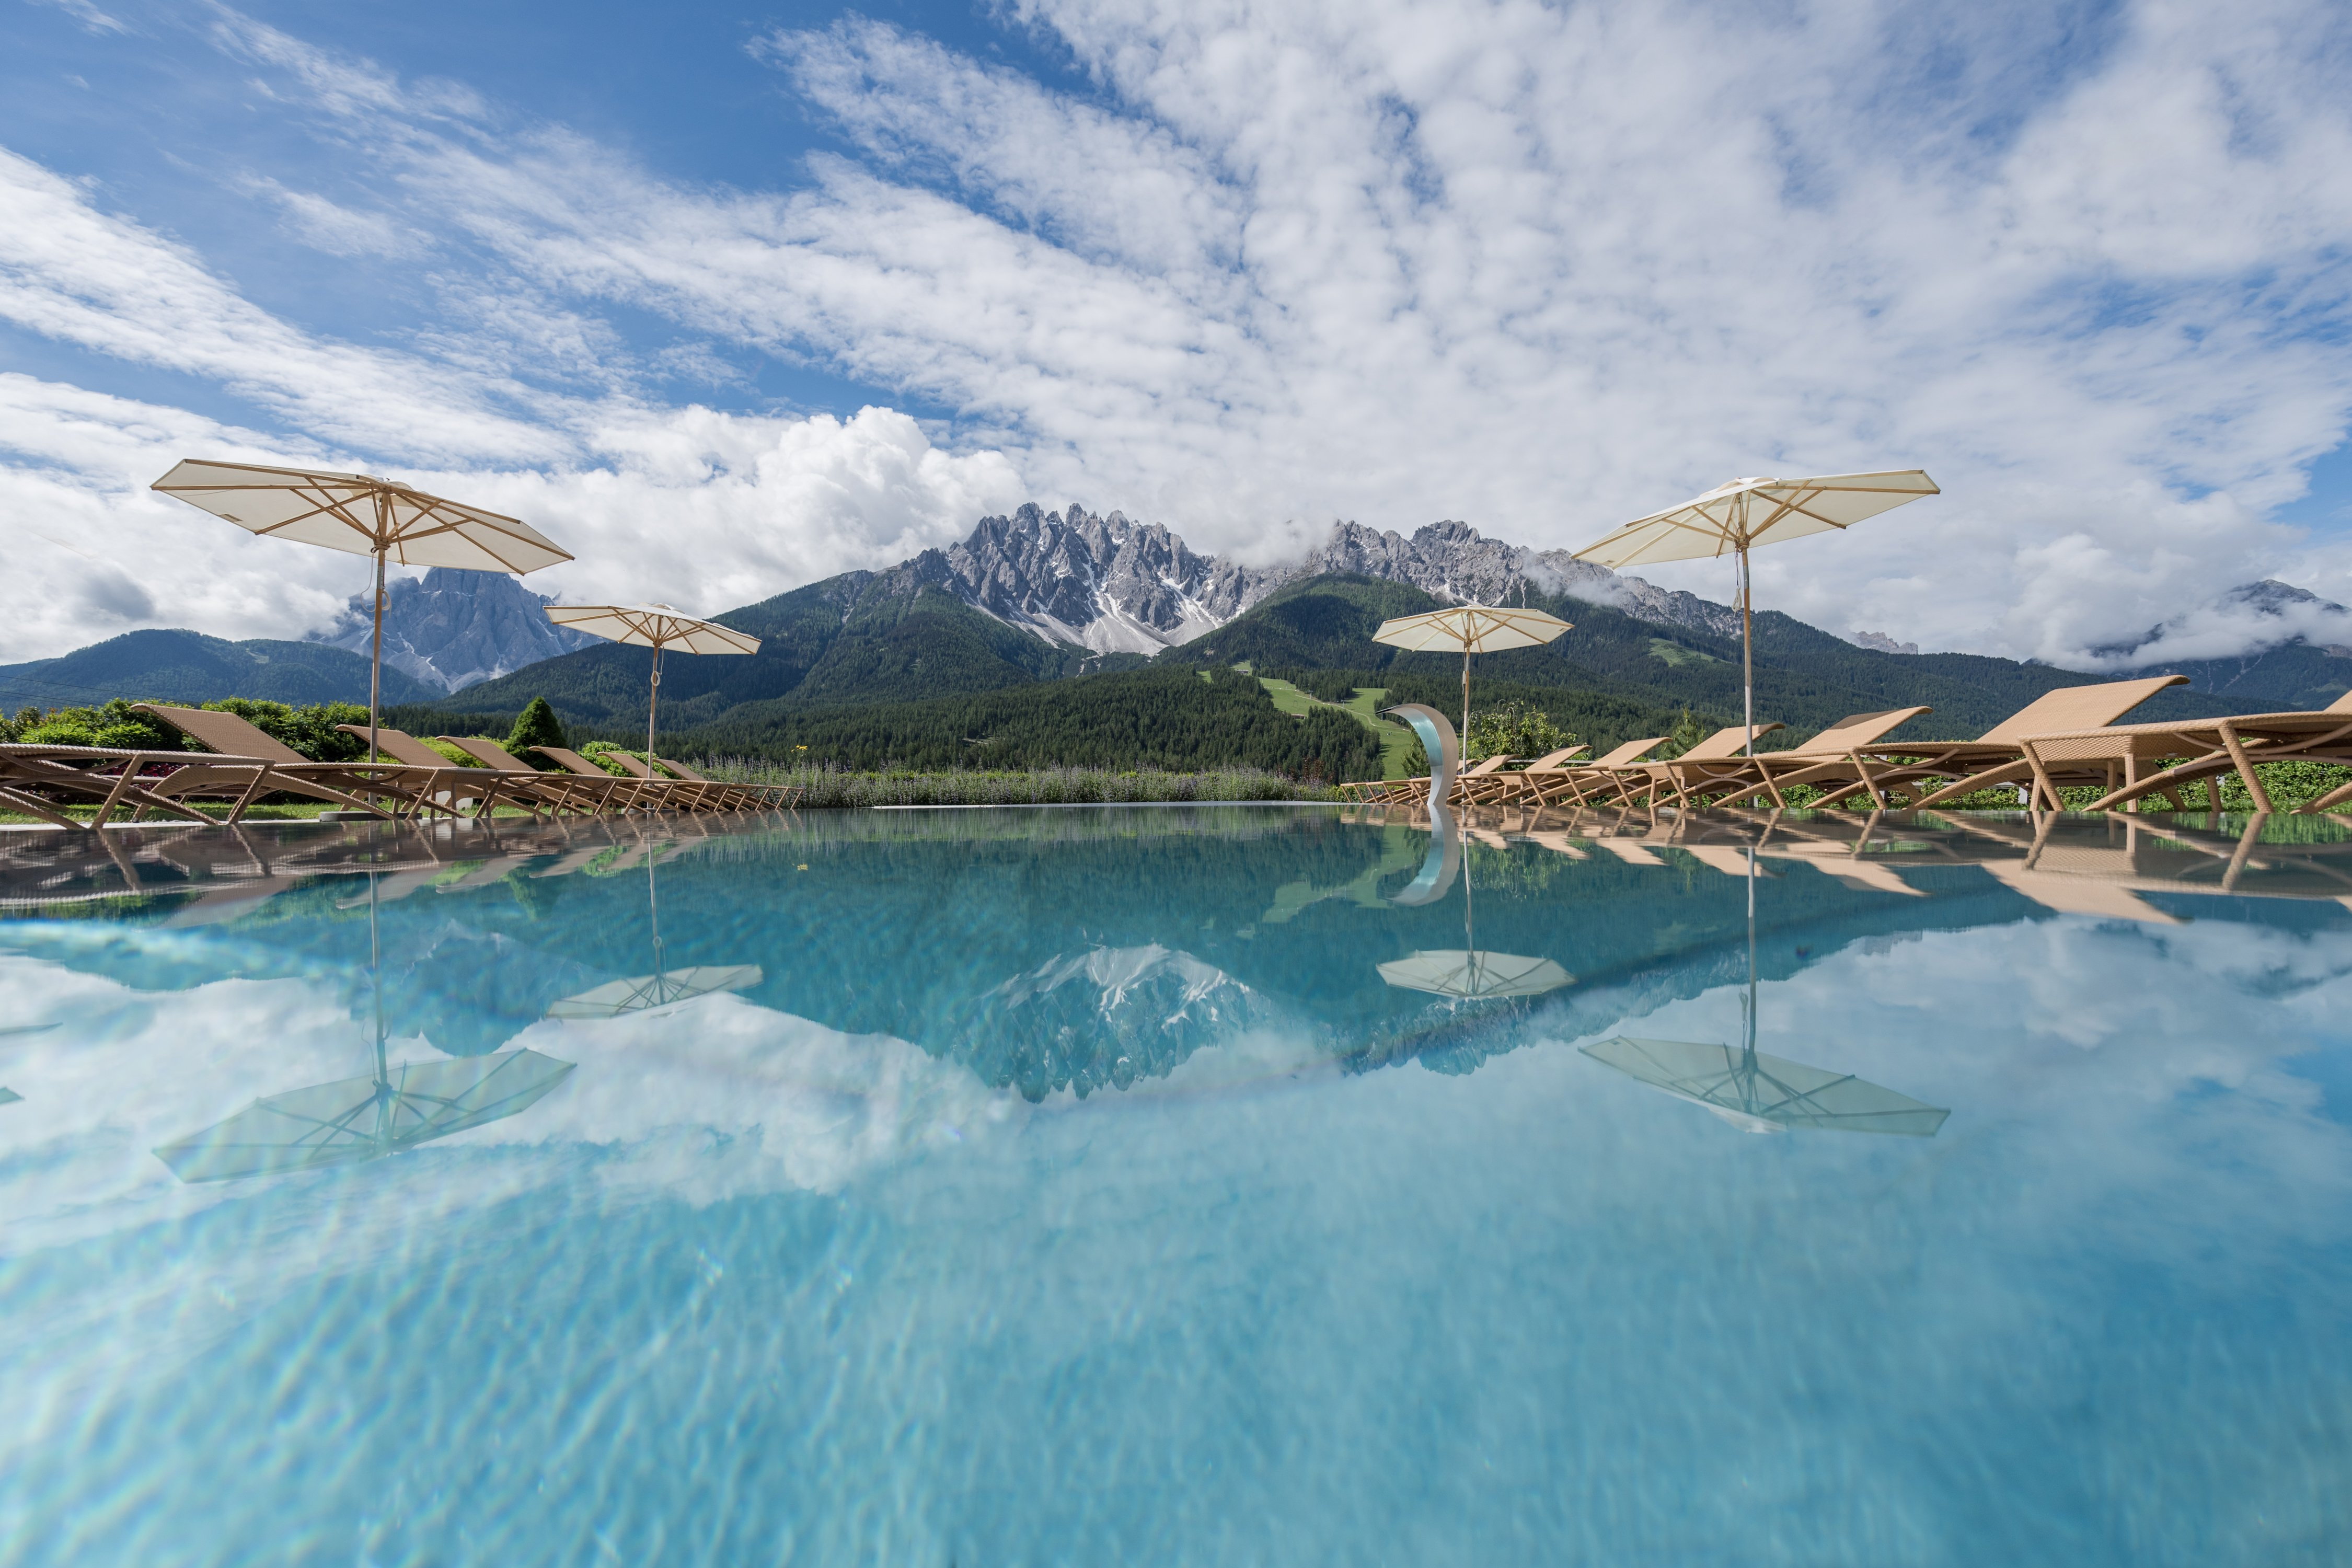 Swimming with a view - at the pool at the Leitlhof